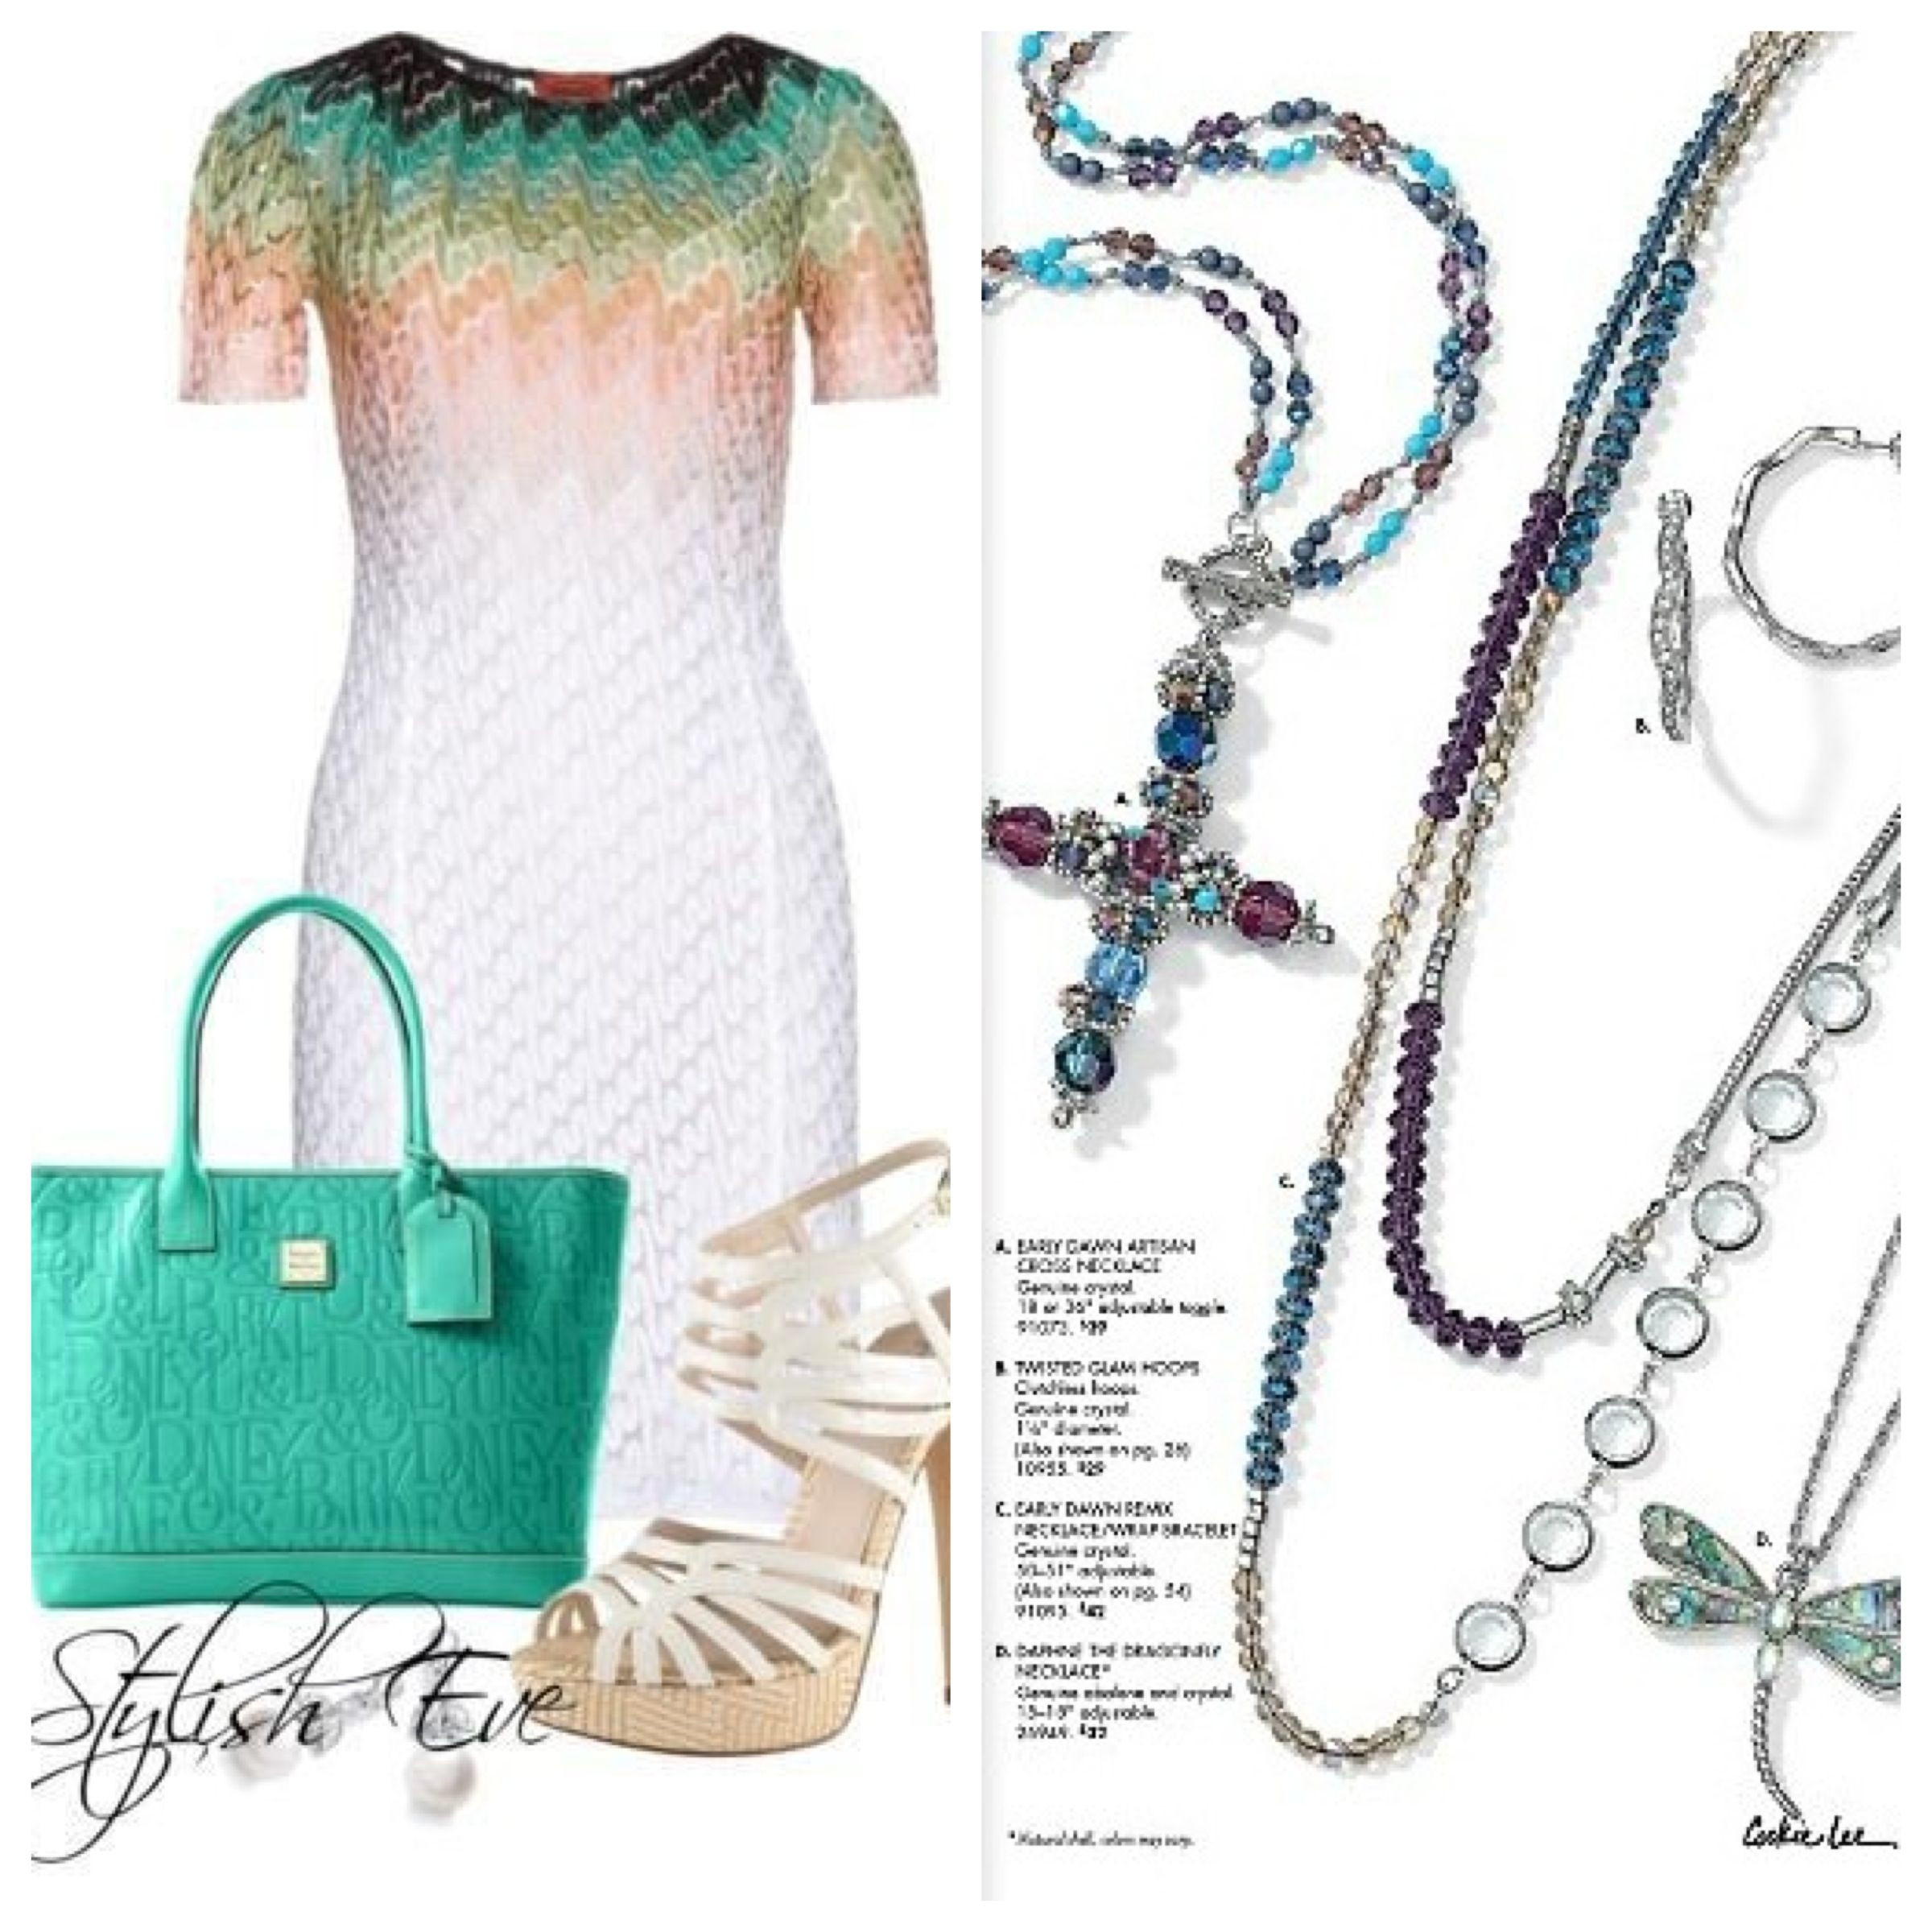 A Stylish Eve outfit is not complete without your Cookie Lee jewelry